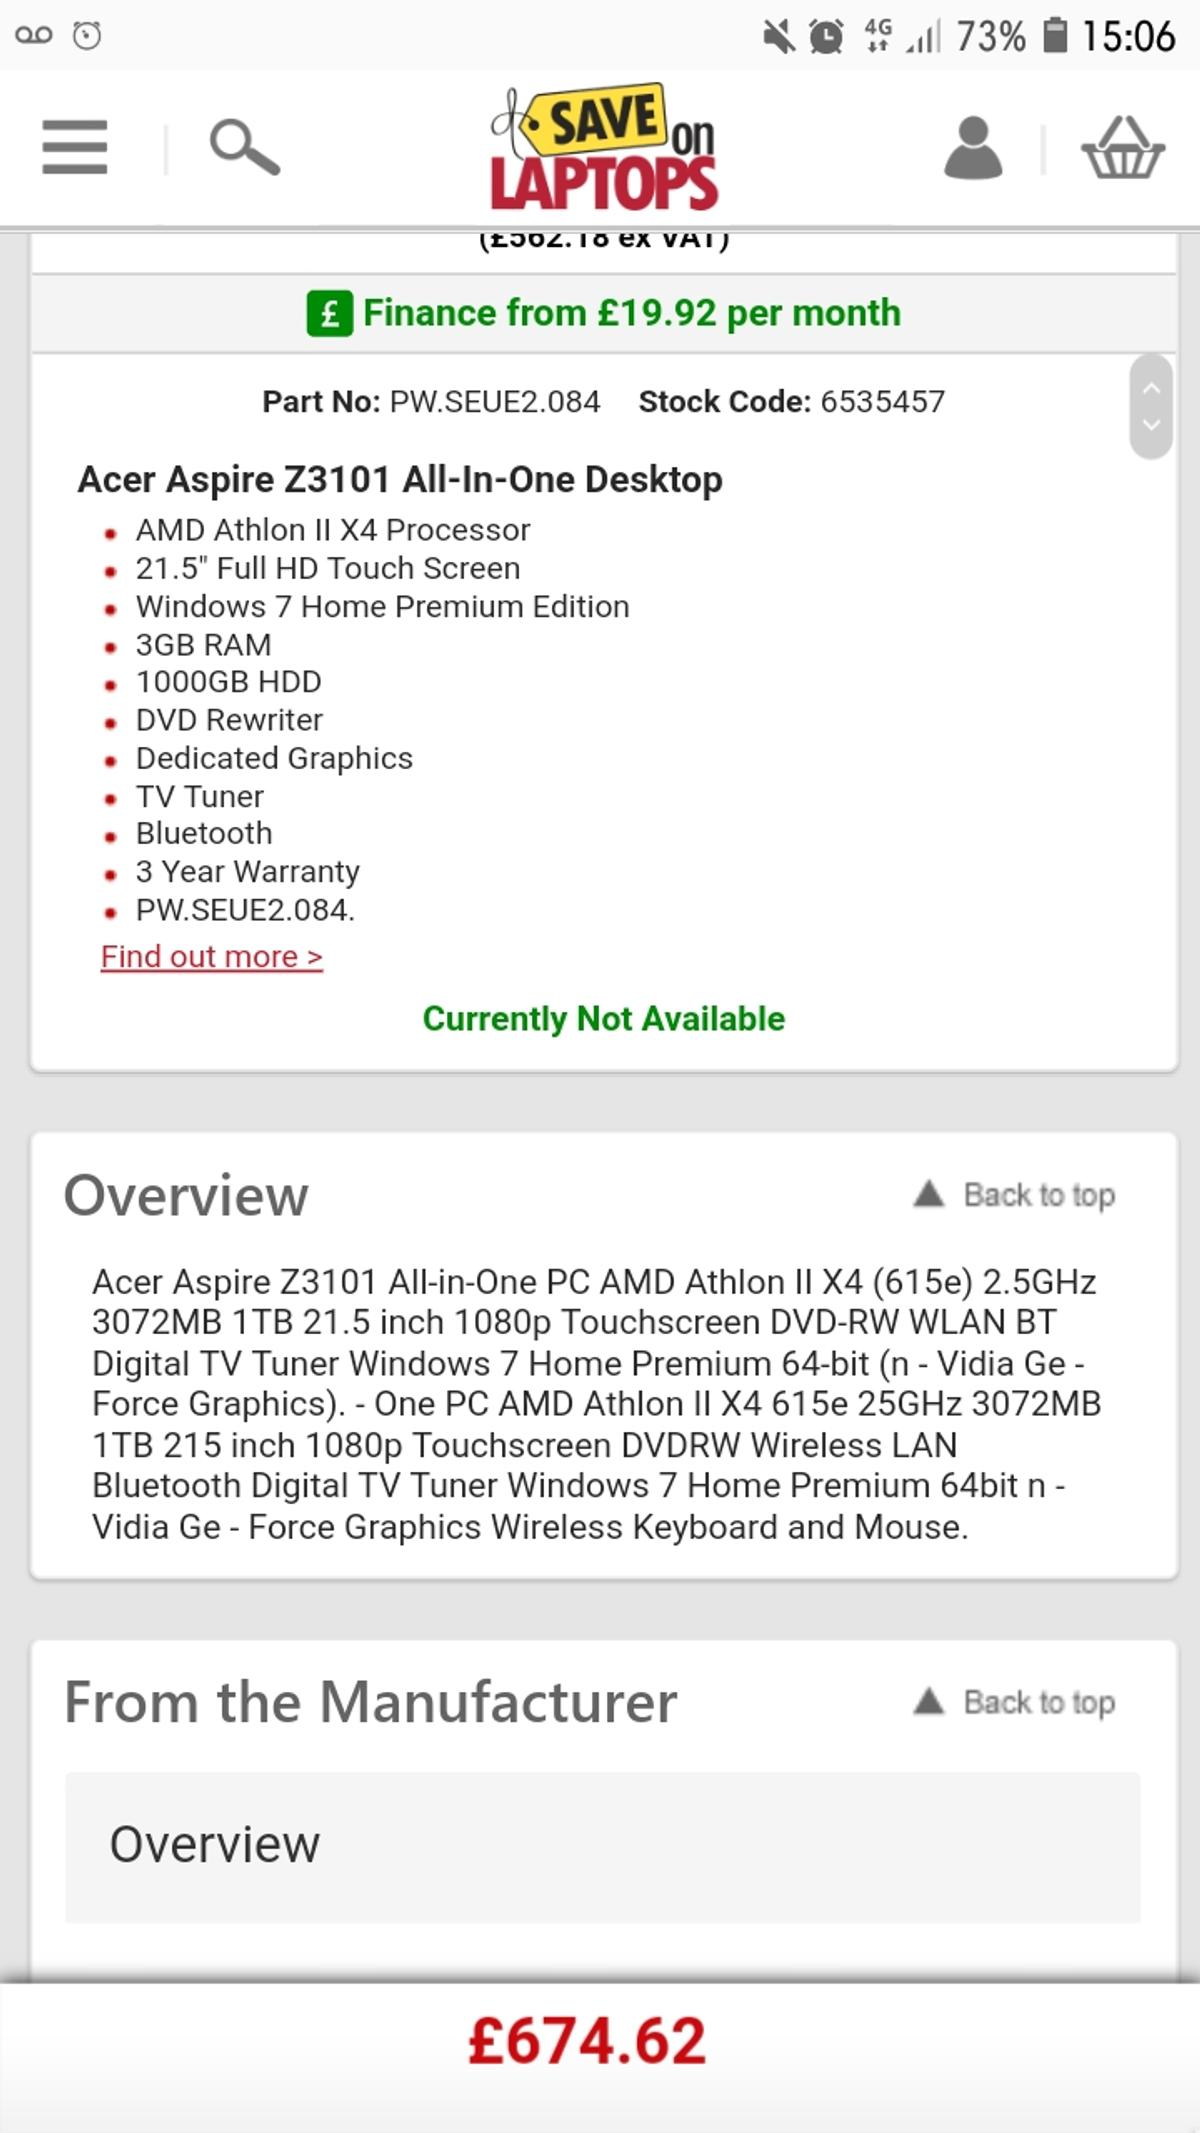 Acer Aspire Z3101 All-in-one PC  Windows 10 in CW7 Clive for £50 00